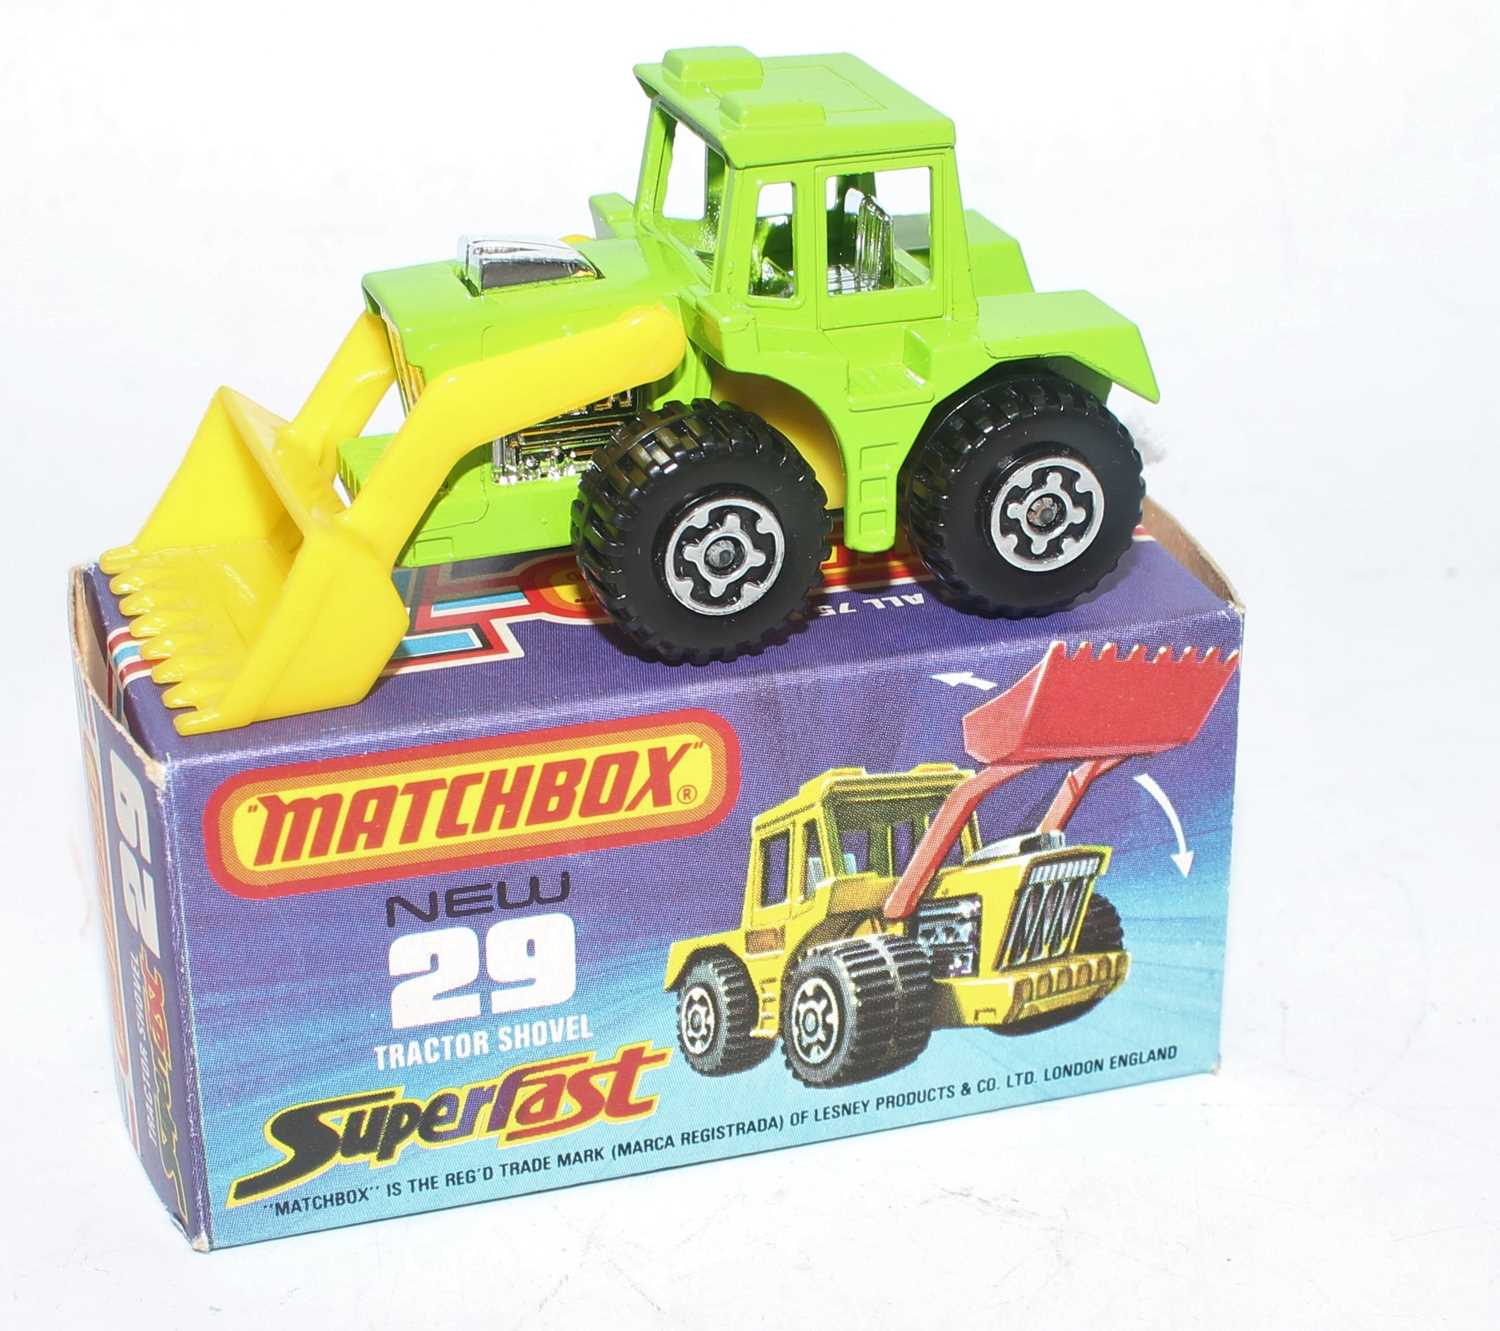 A Matchbox Superfast No. 29 tractor shovel finished in lime green with yellow shovel and yellow